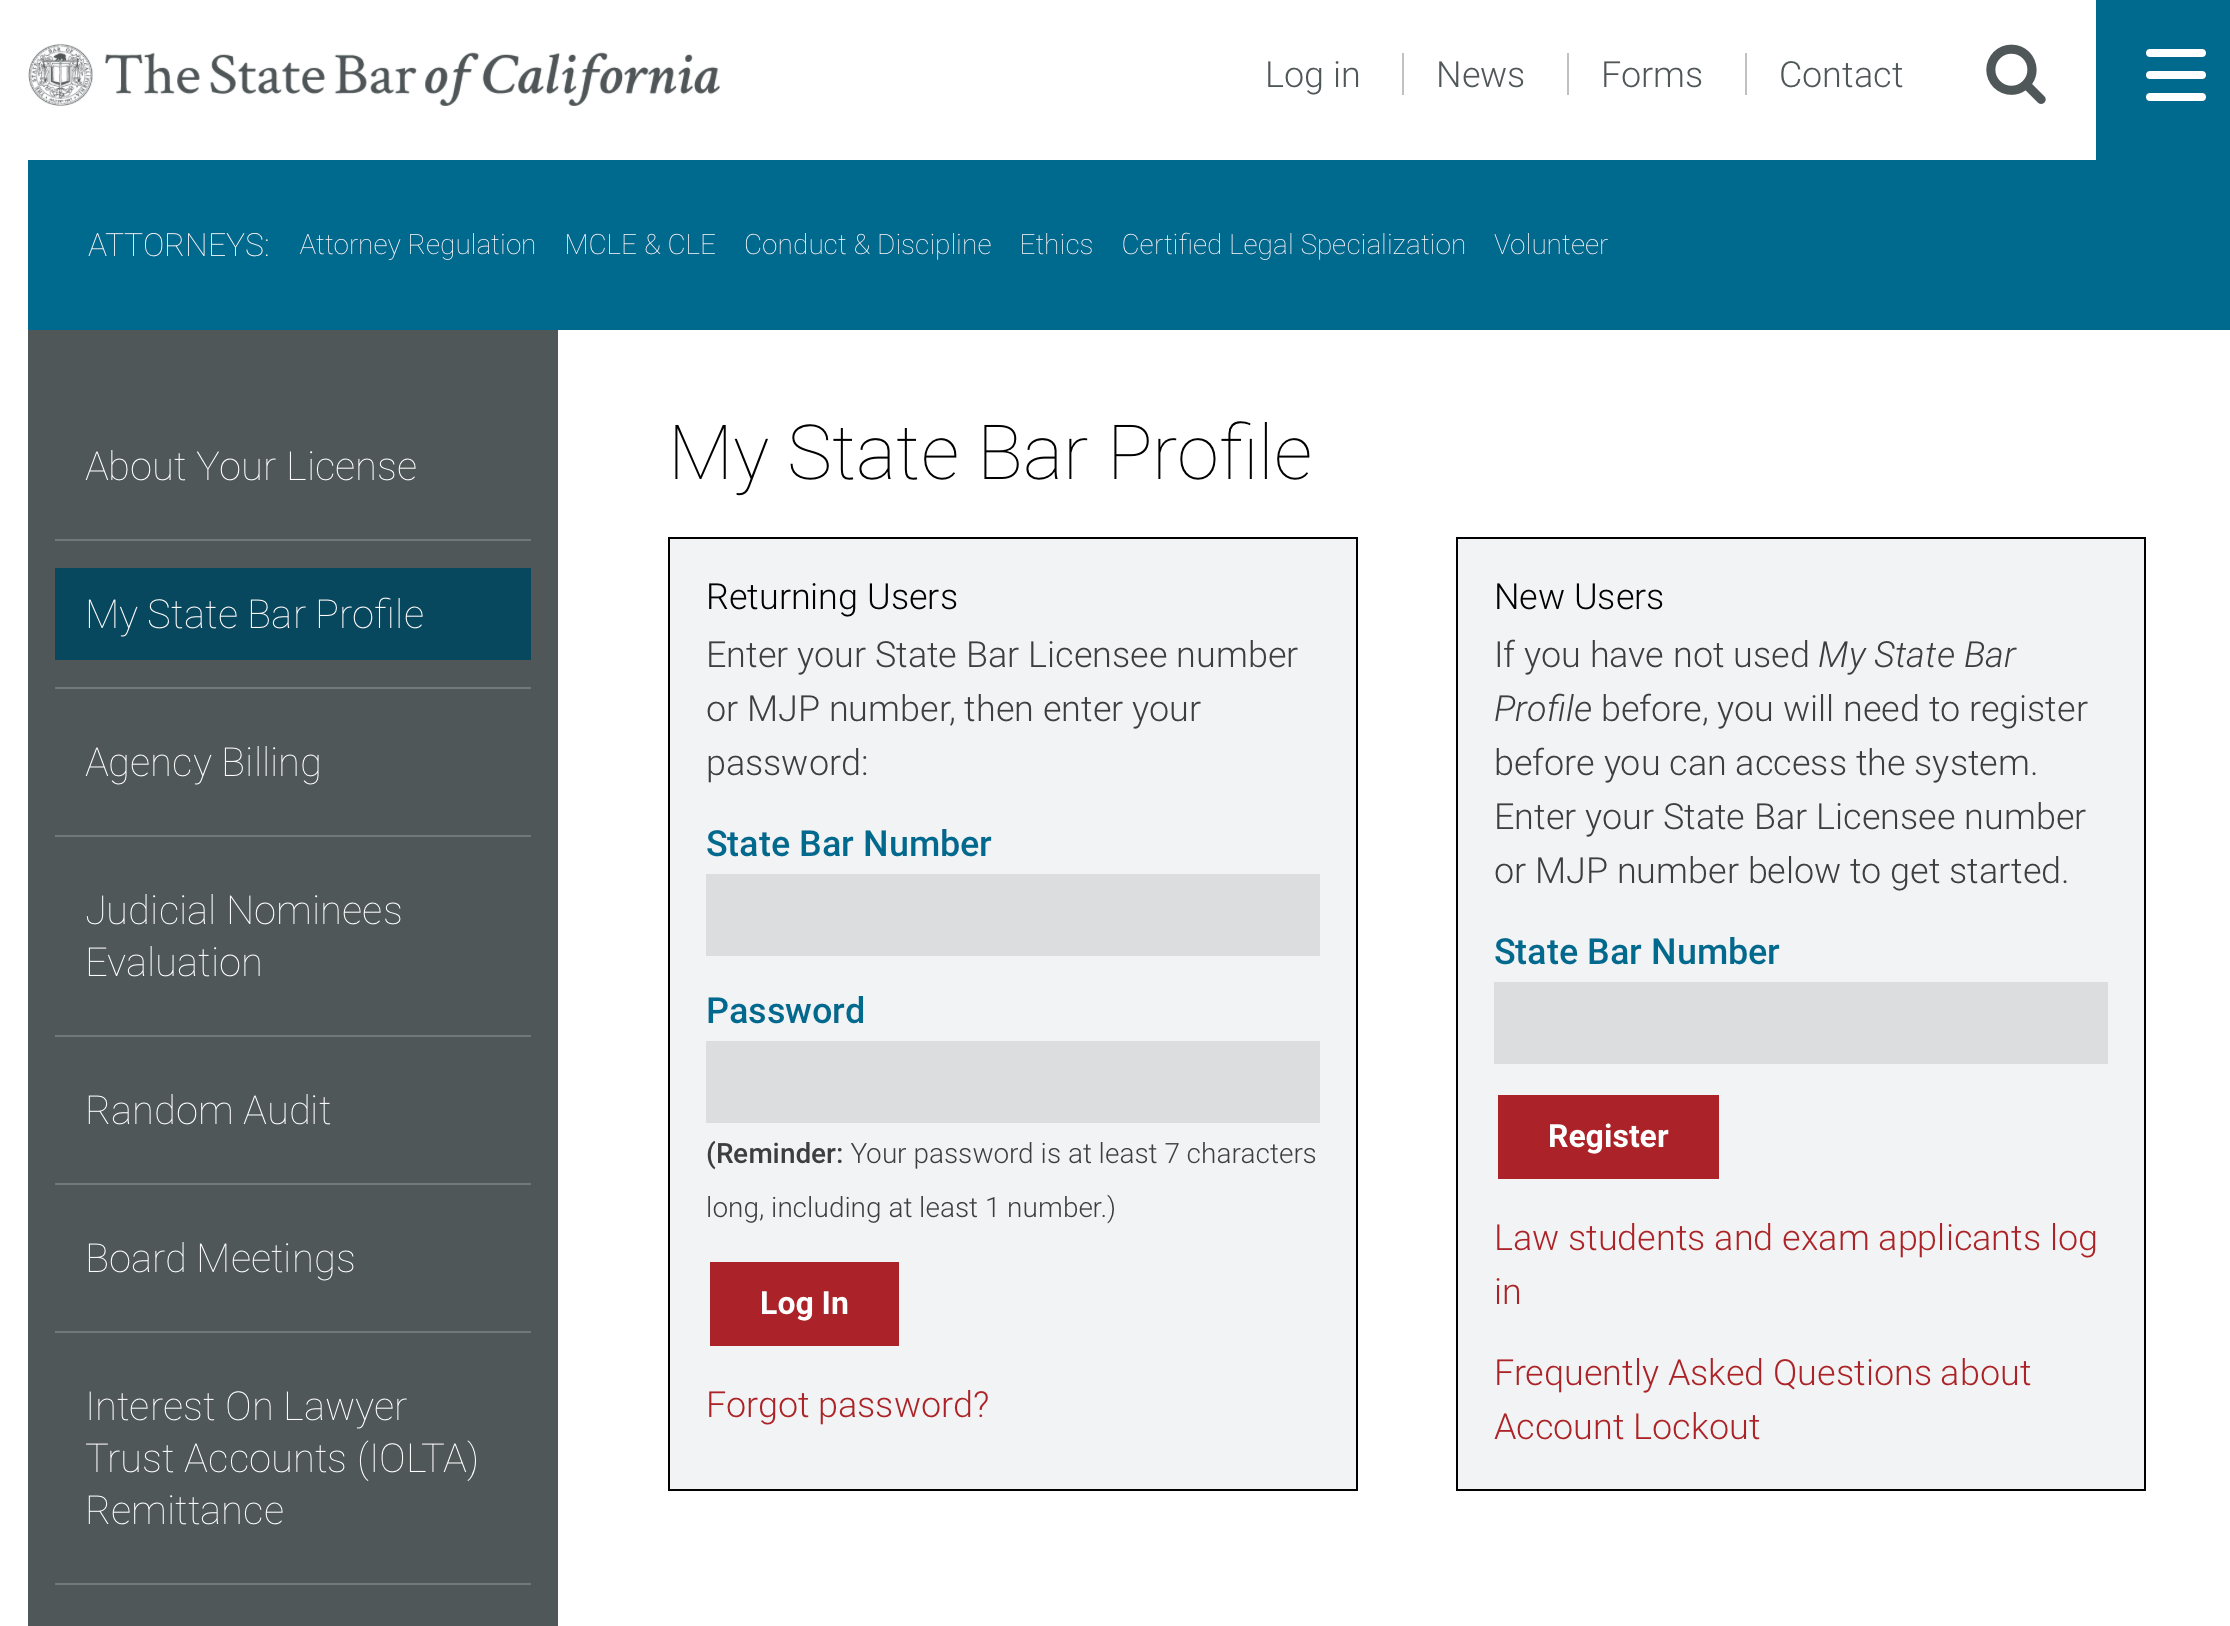 California State Bar Ca Cle Report Ca Mcle Compliance Via My State Bar Profile Mlce Blog